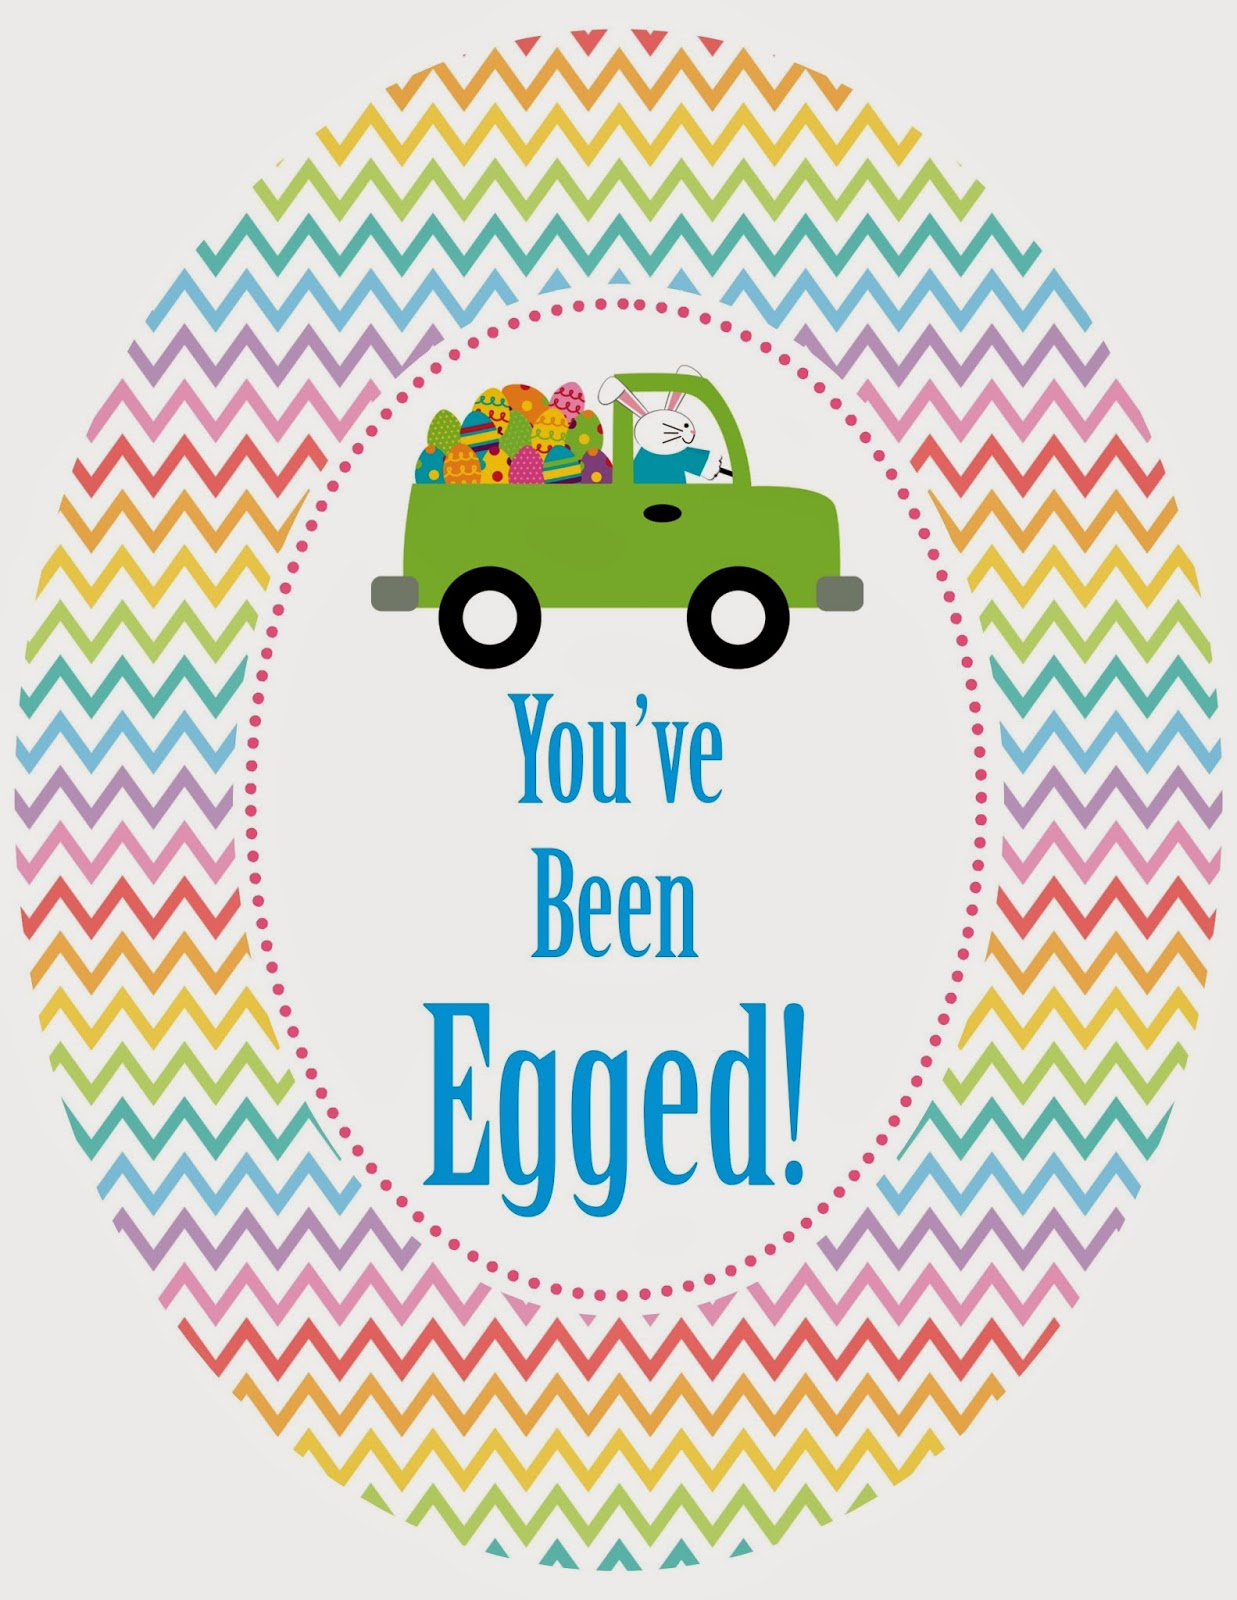 Genius image within you've been egged printable